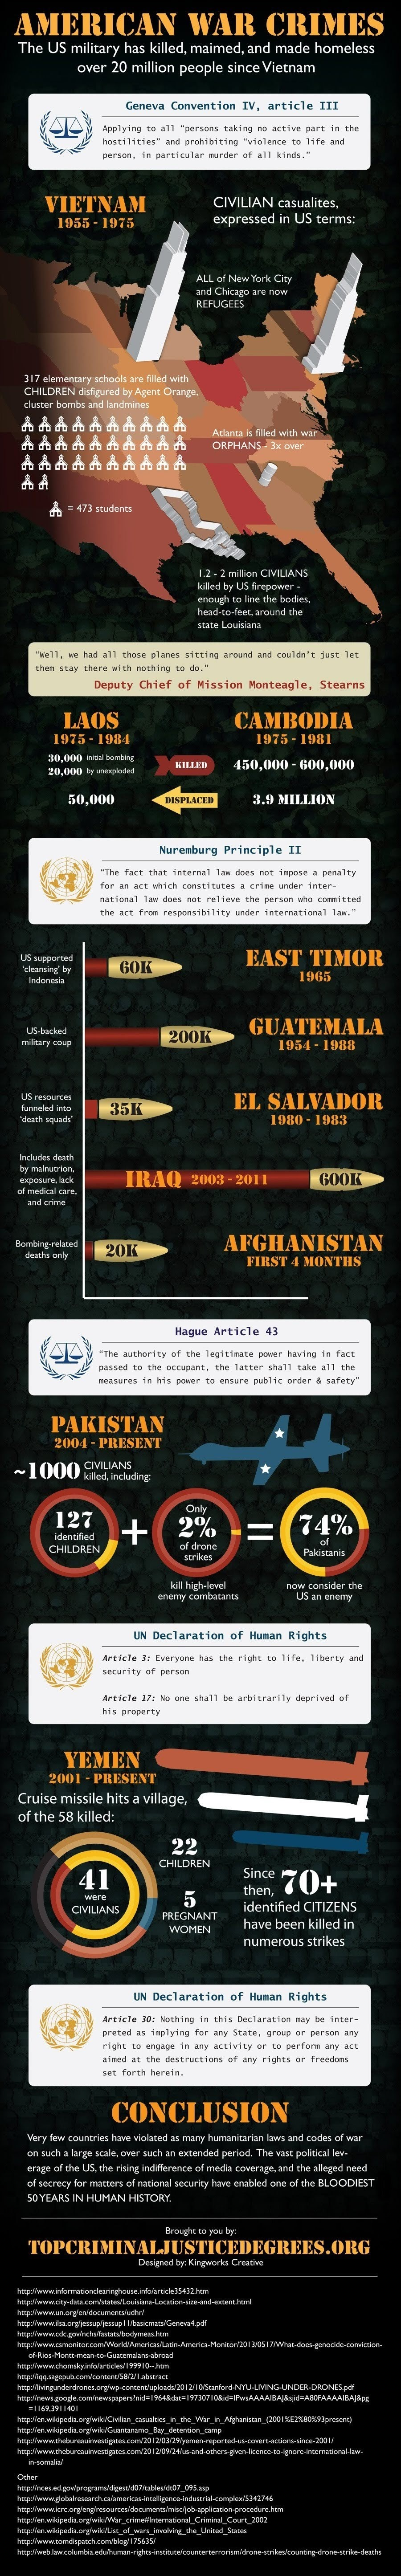 War Crimes in the USA #infographic